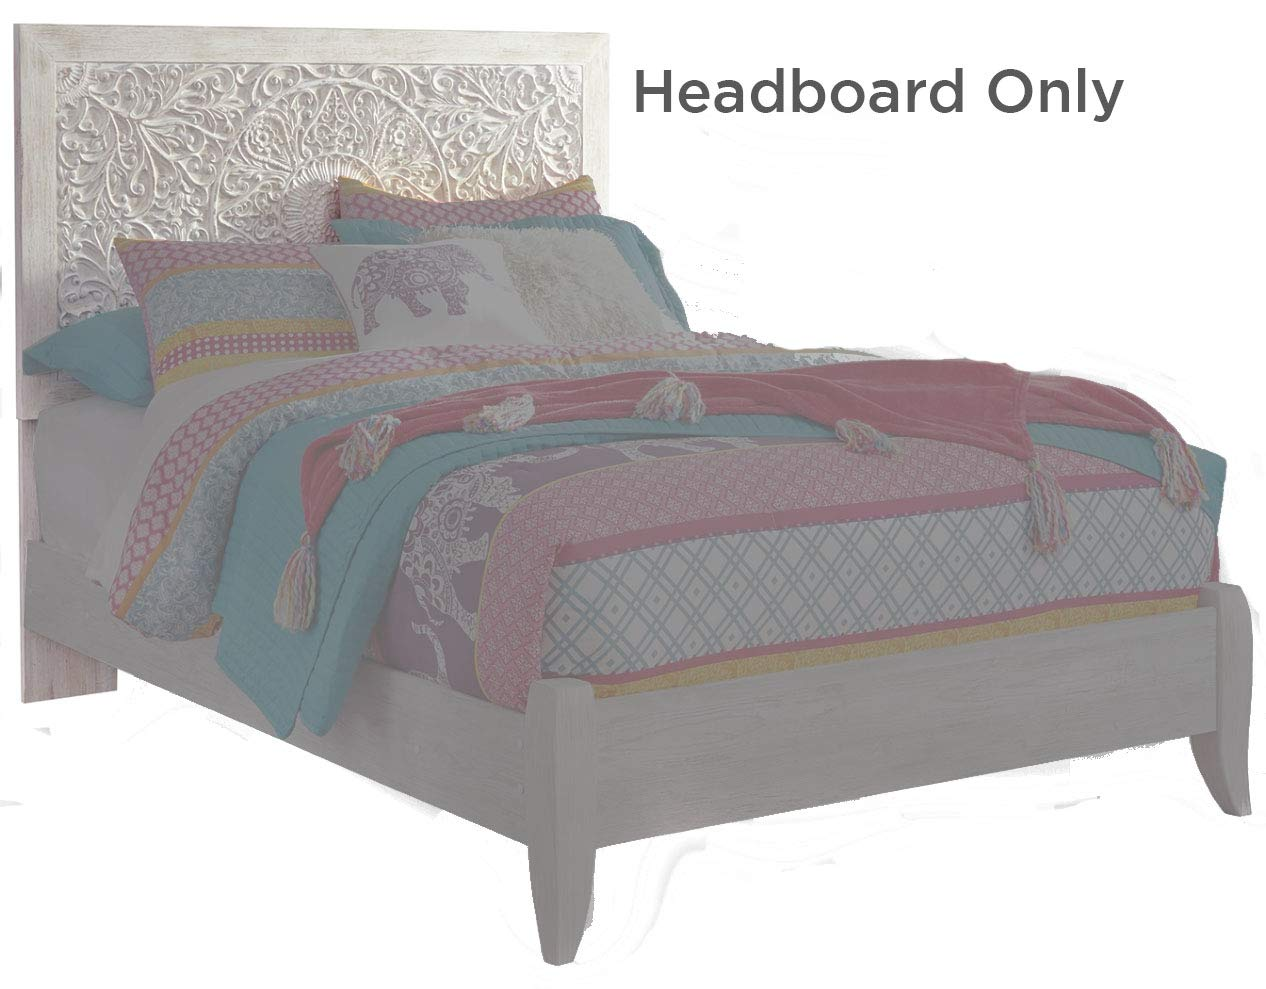 Signature Design By Ashley - Paxberry Full Panel Headboard - Whitewash by Signature Design by Ashley